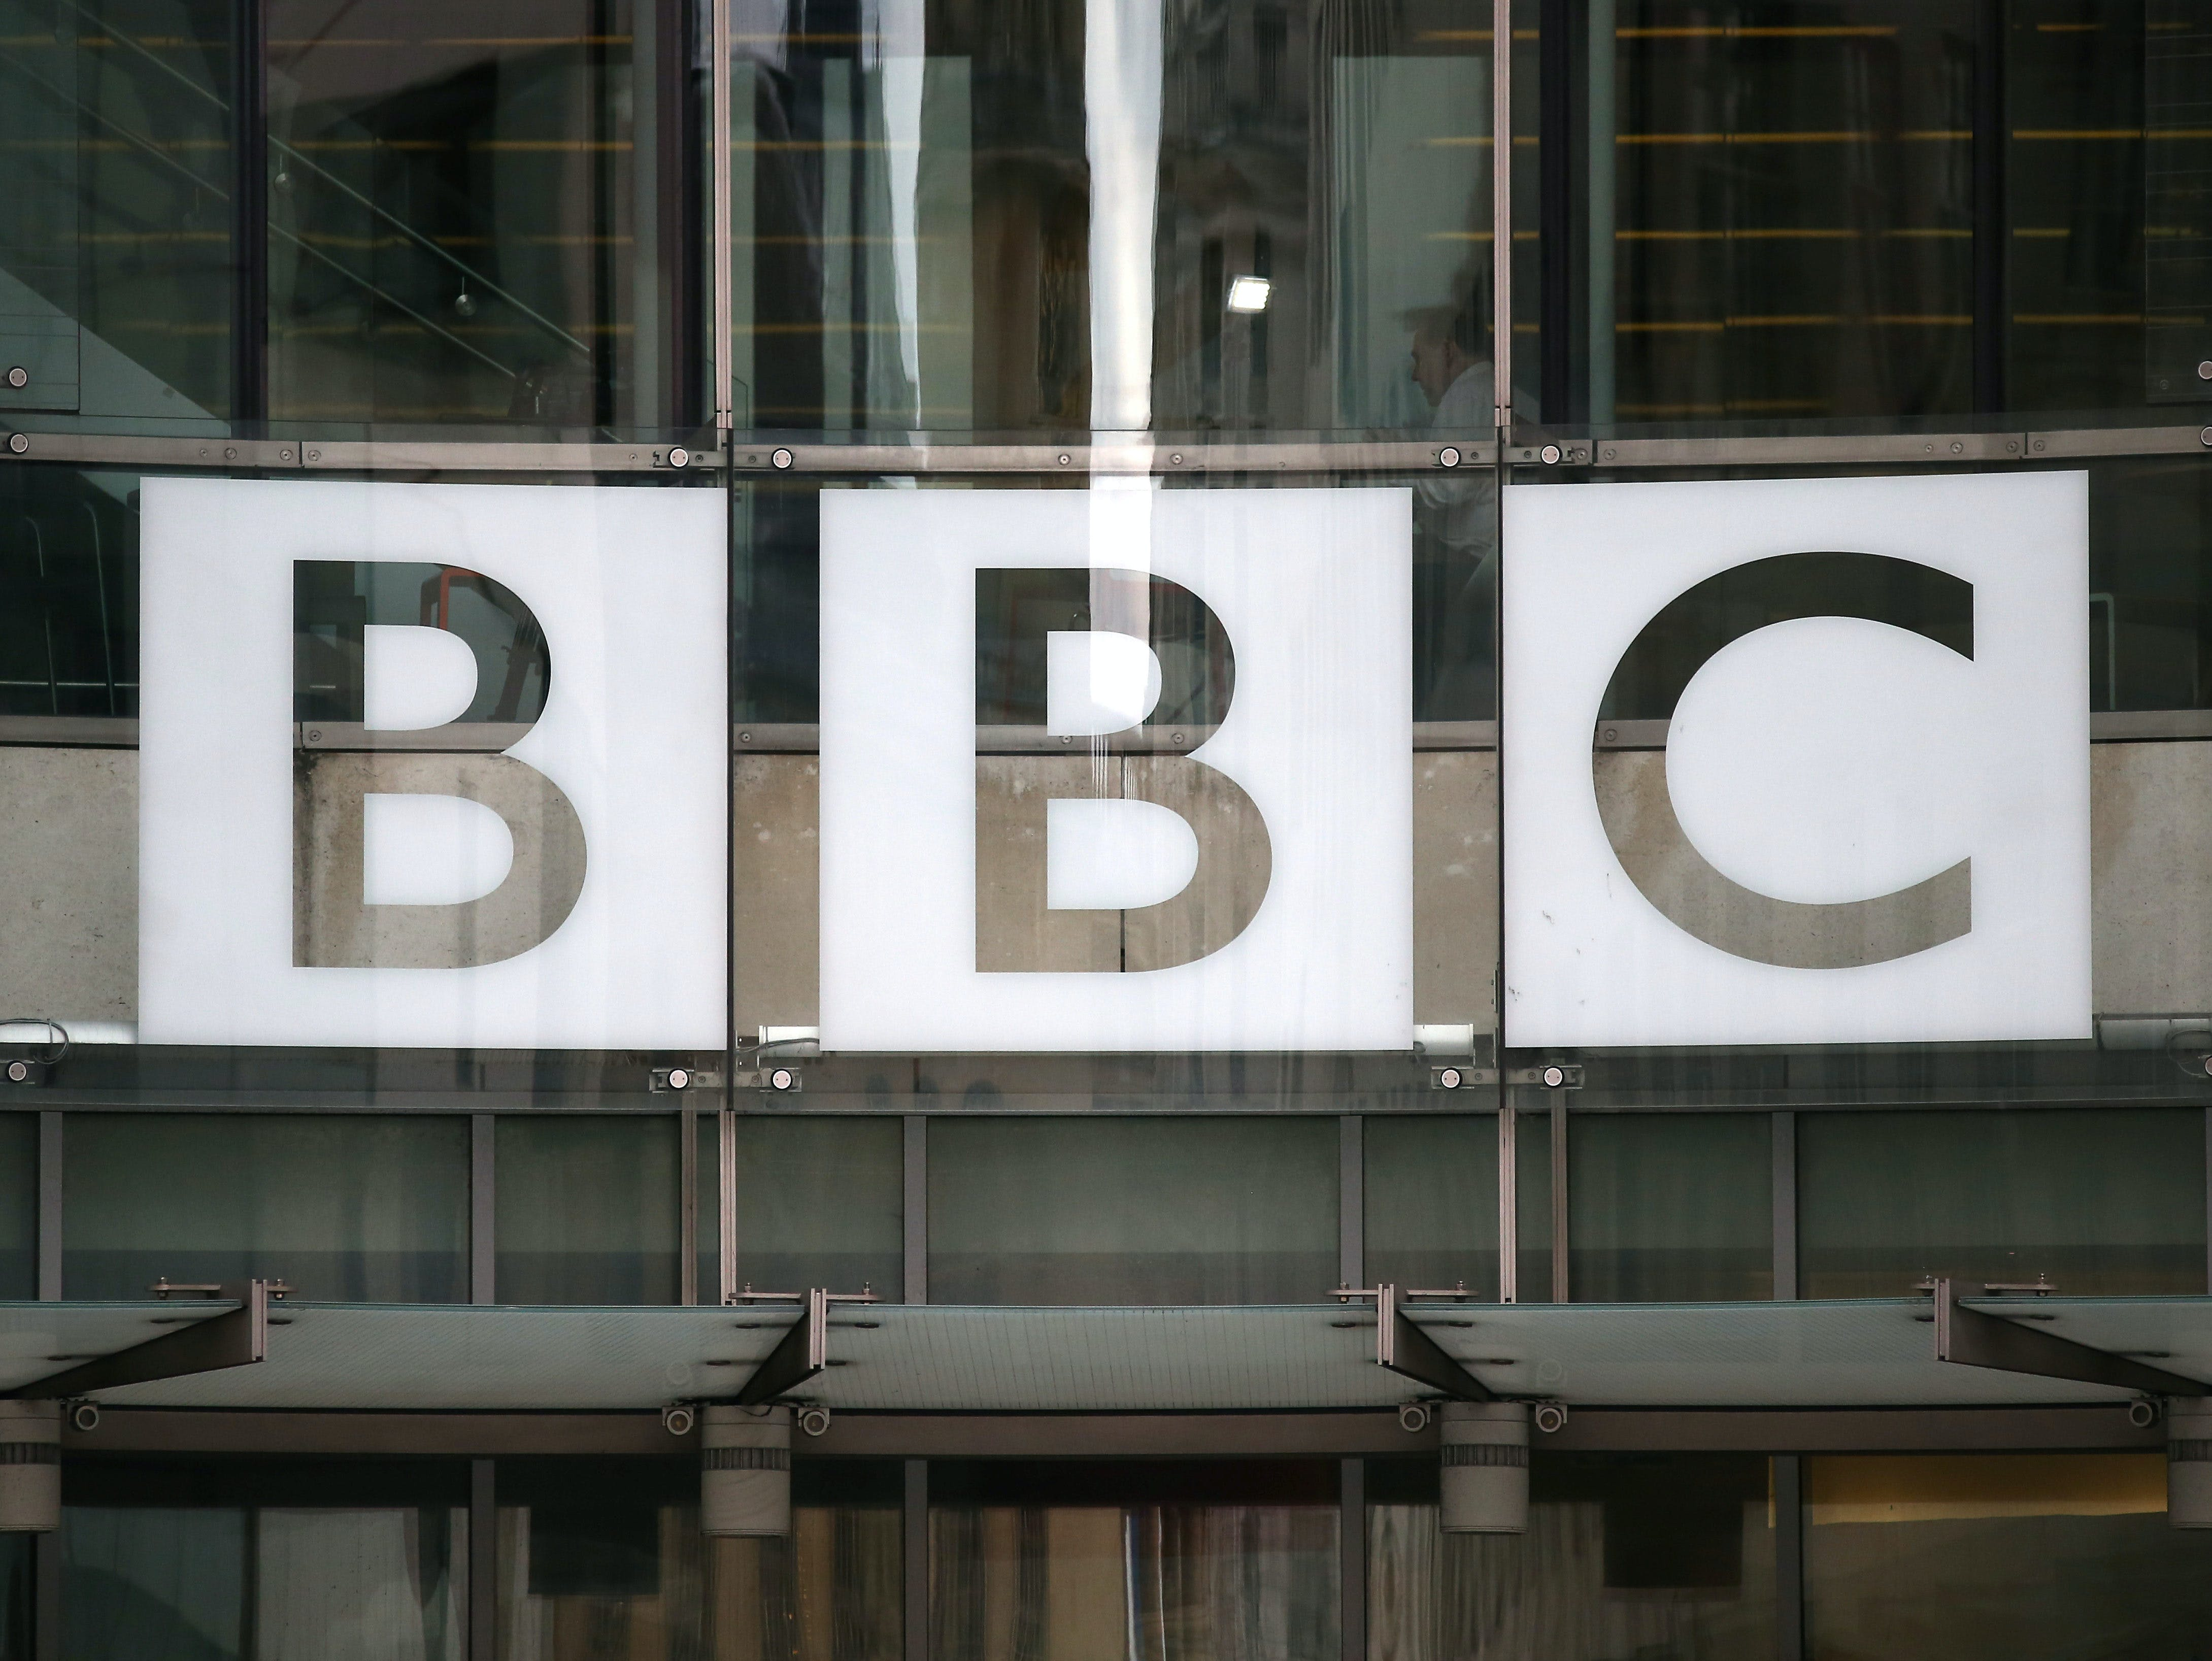 BBC: £100M FOR DIVERSE AND INCLUSIVE CONTENT